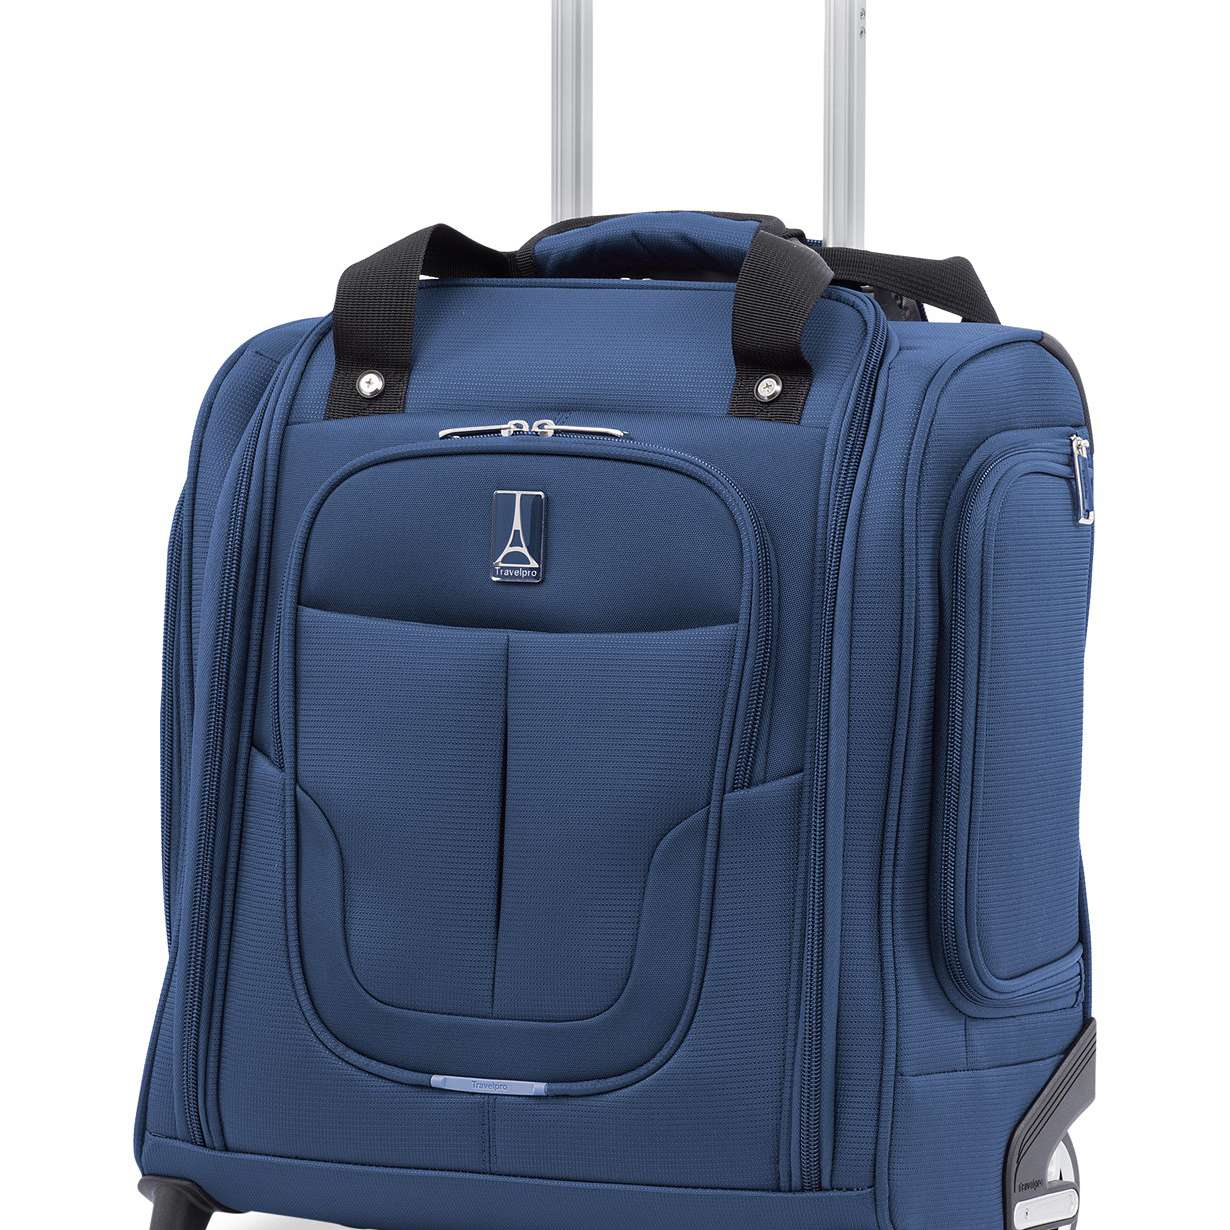 da8e7d08e Best Underseater: Travelpro Walkabout 4 Under-The-Seat Bag with USB Port